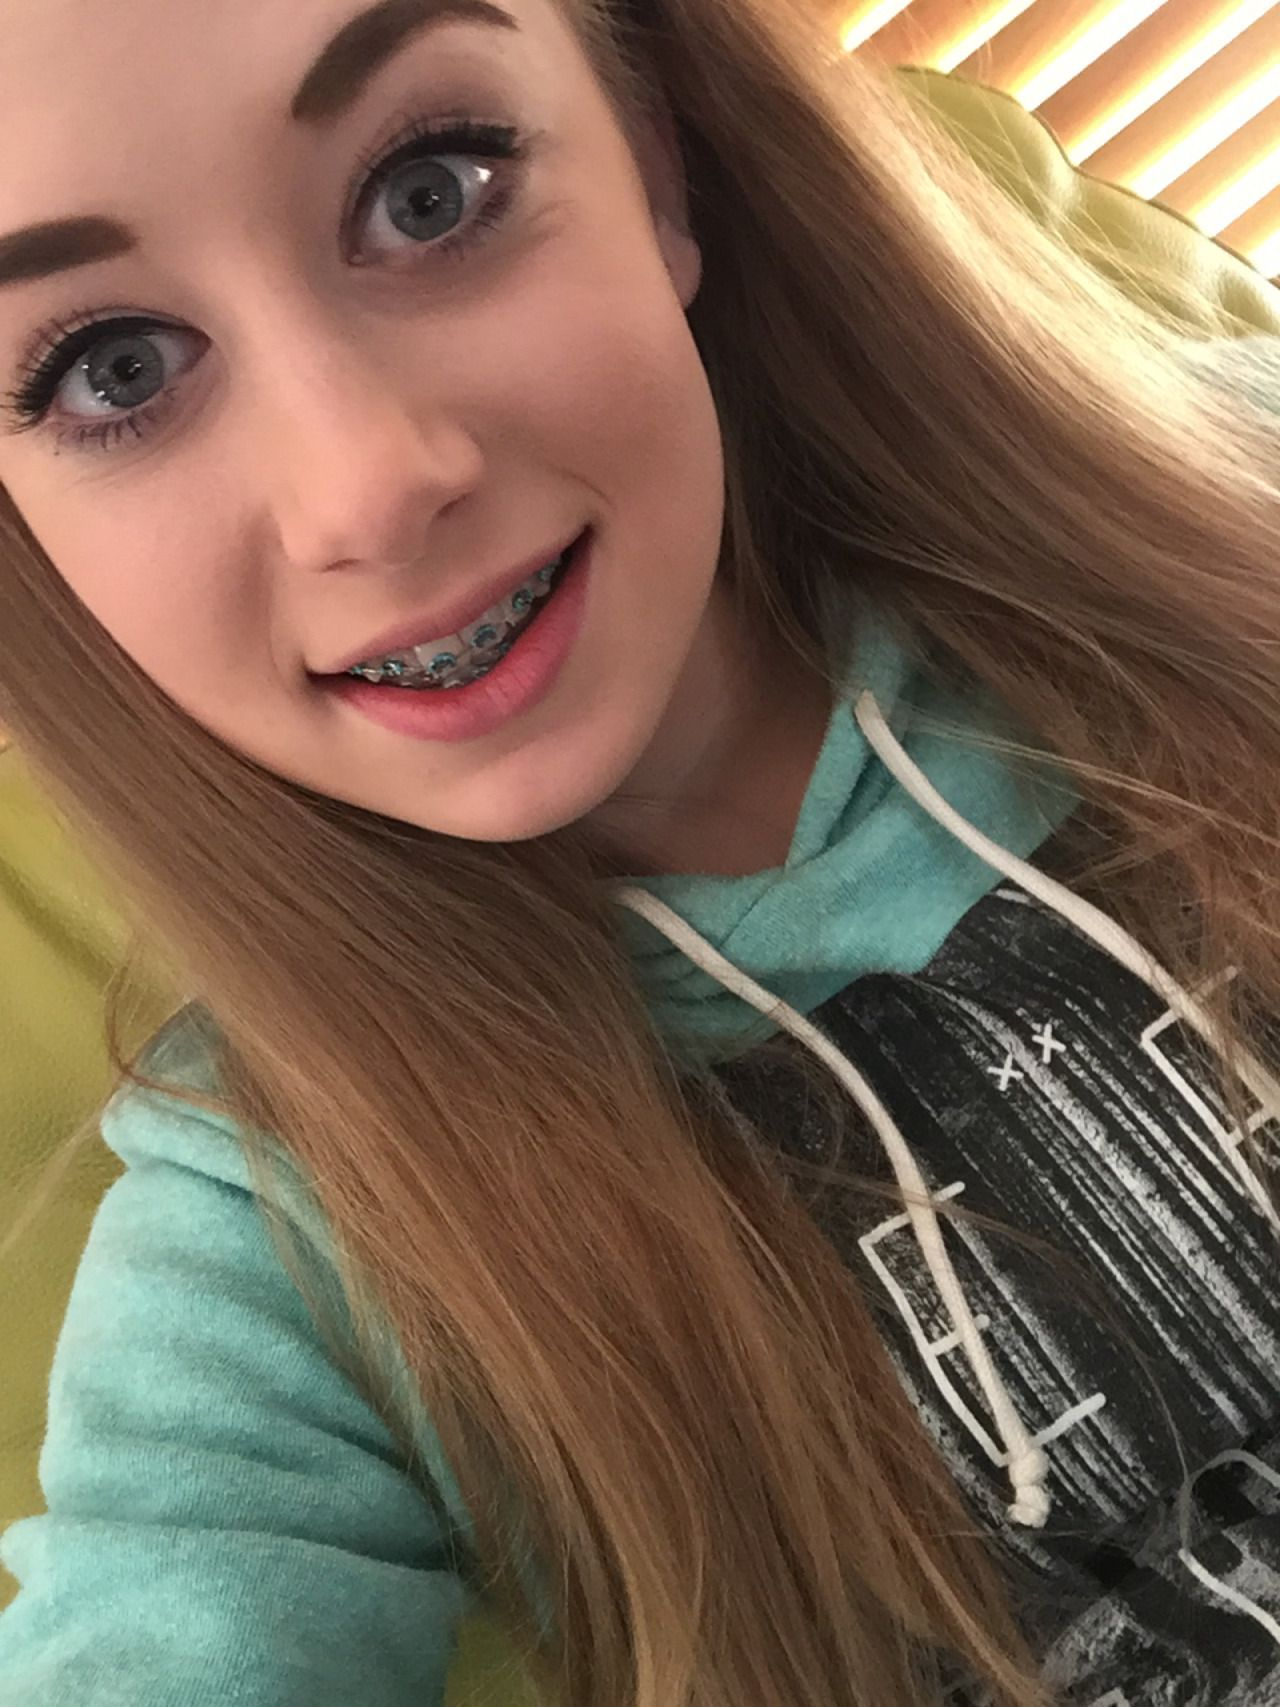 facial Cute braces girl teens with young